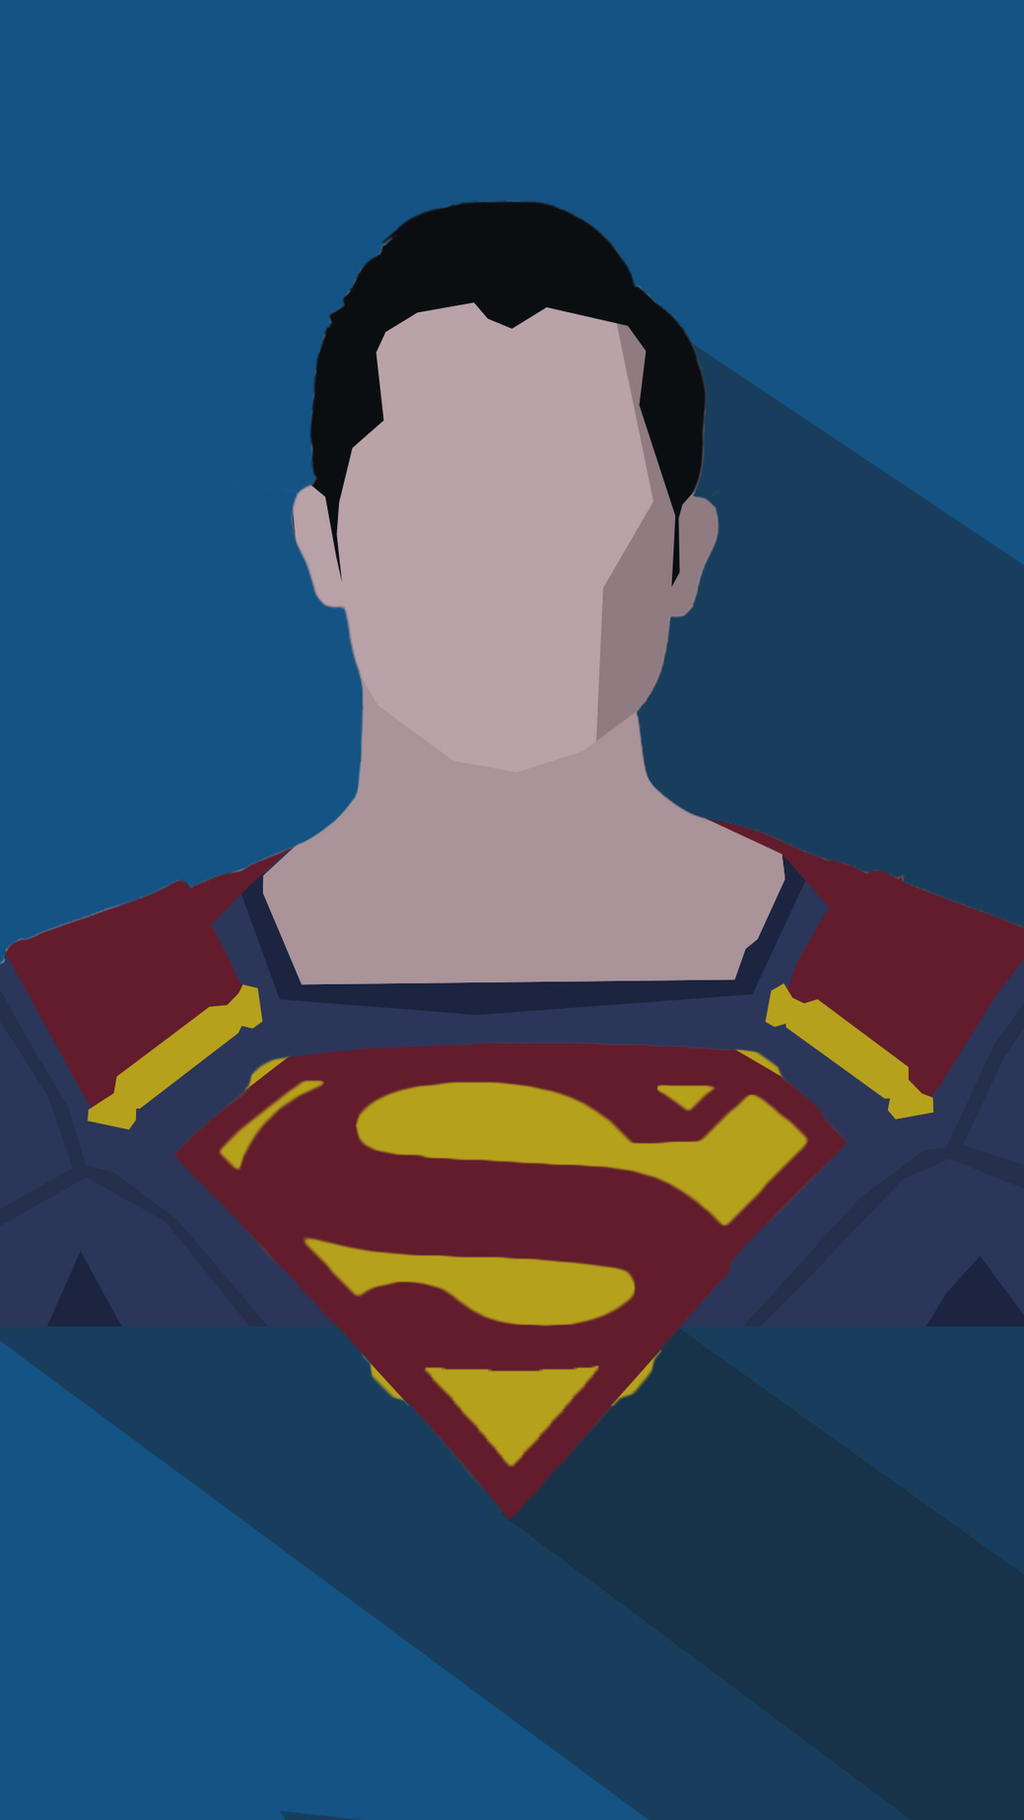 superman wallpaper for a nokia - photo #33